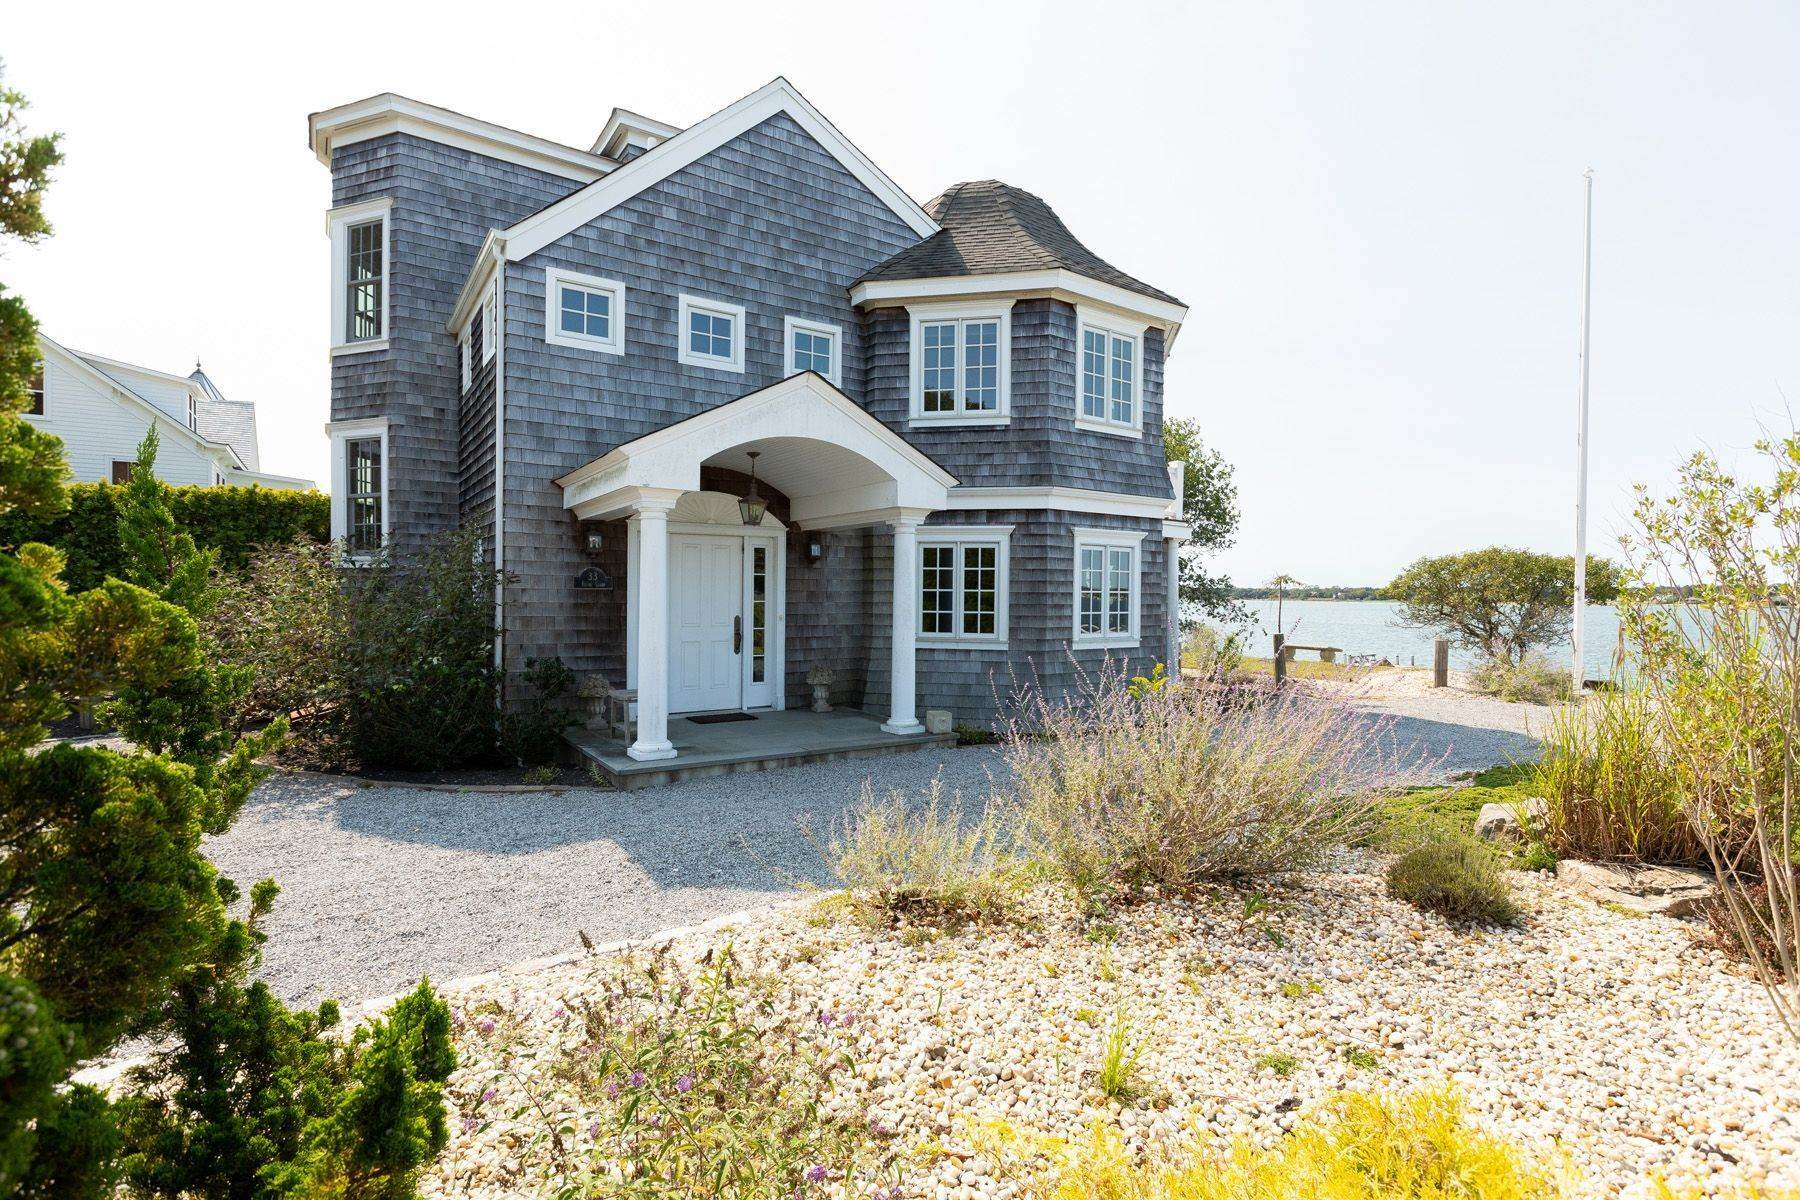 Single Family Homes for Sale at 33 Mineola Court, Hampton Bays, Ny, 11946 33 Mineola Court Hampton Bays, New York 11946 United States